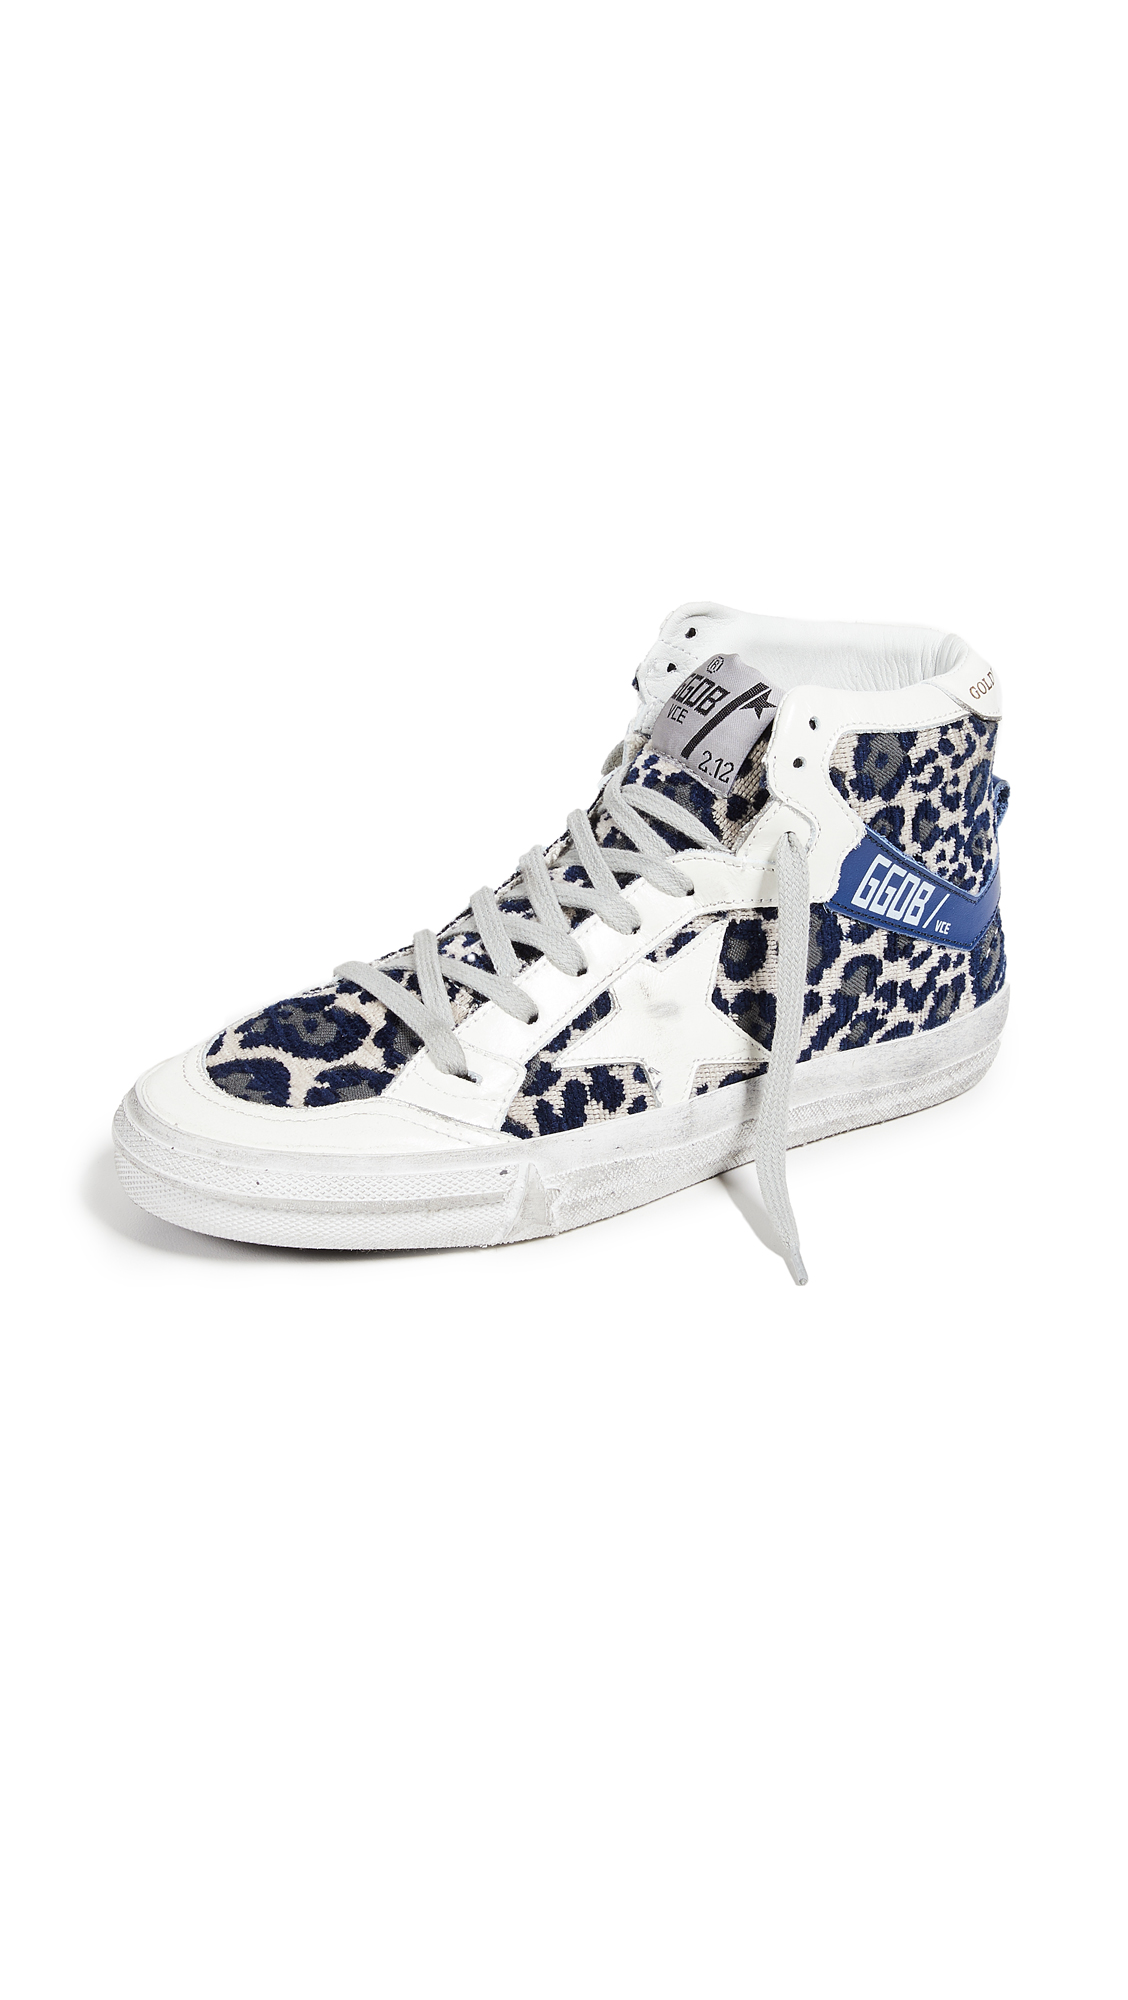 Golden Goose 2.12 Sneakers - Navy Leopard